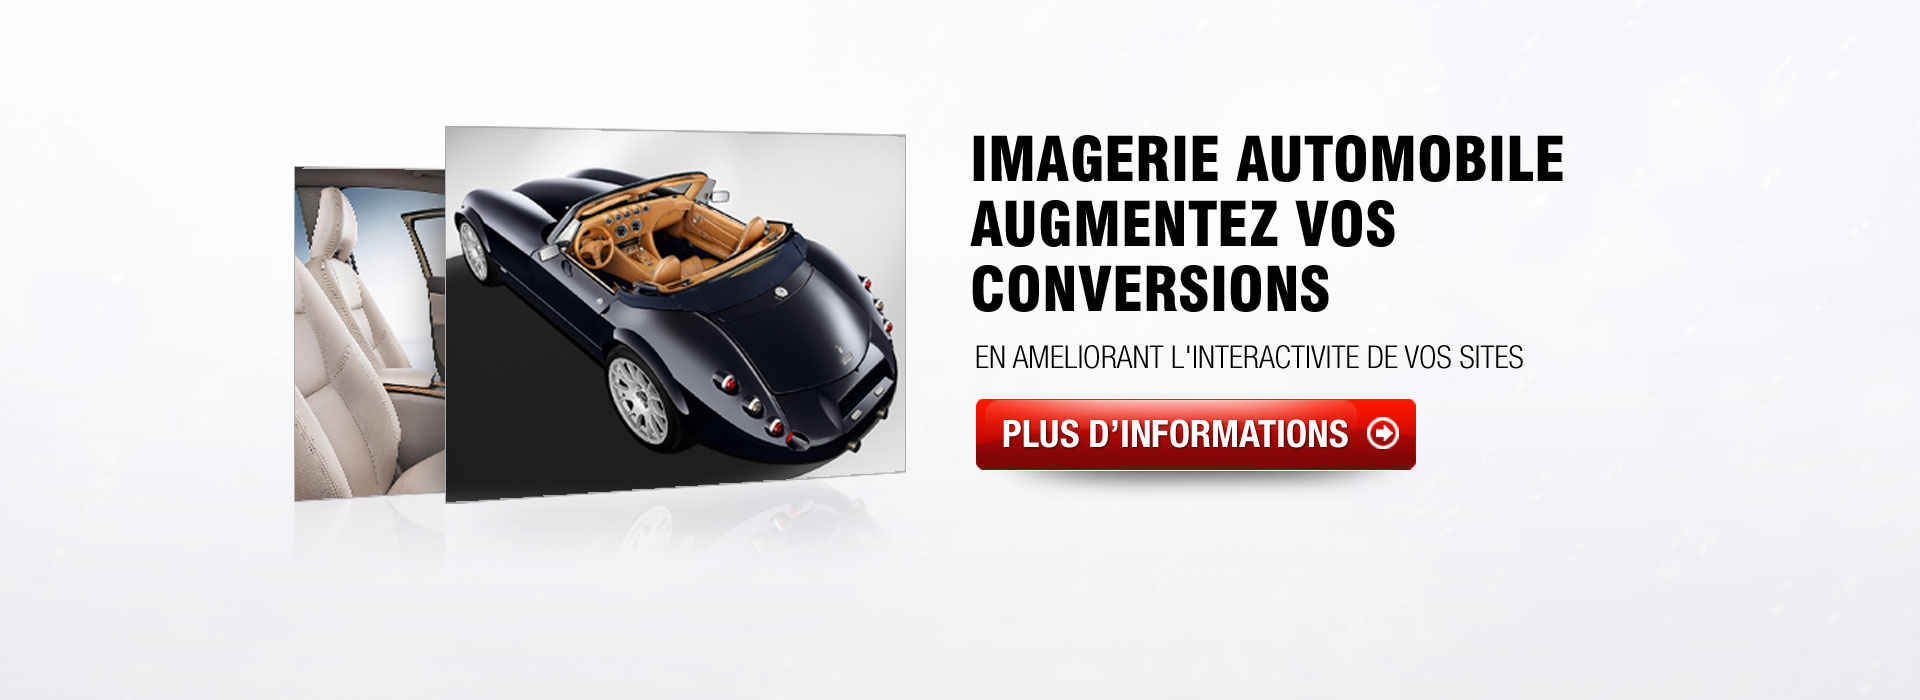 IMAGERIE AUTOMOBILE